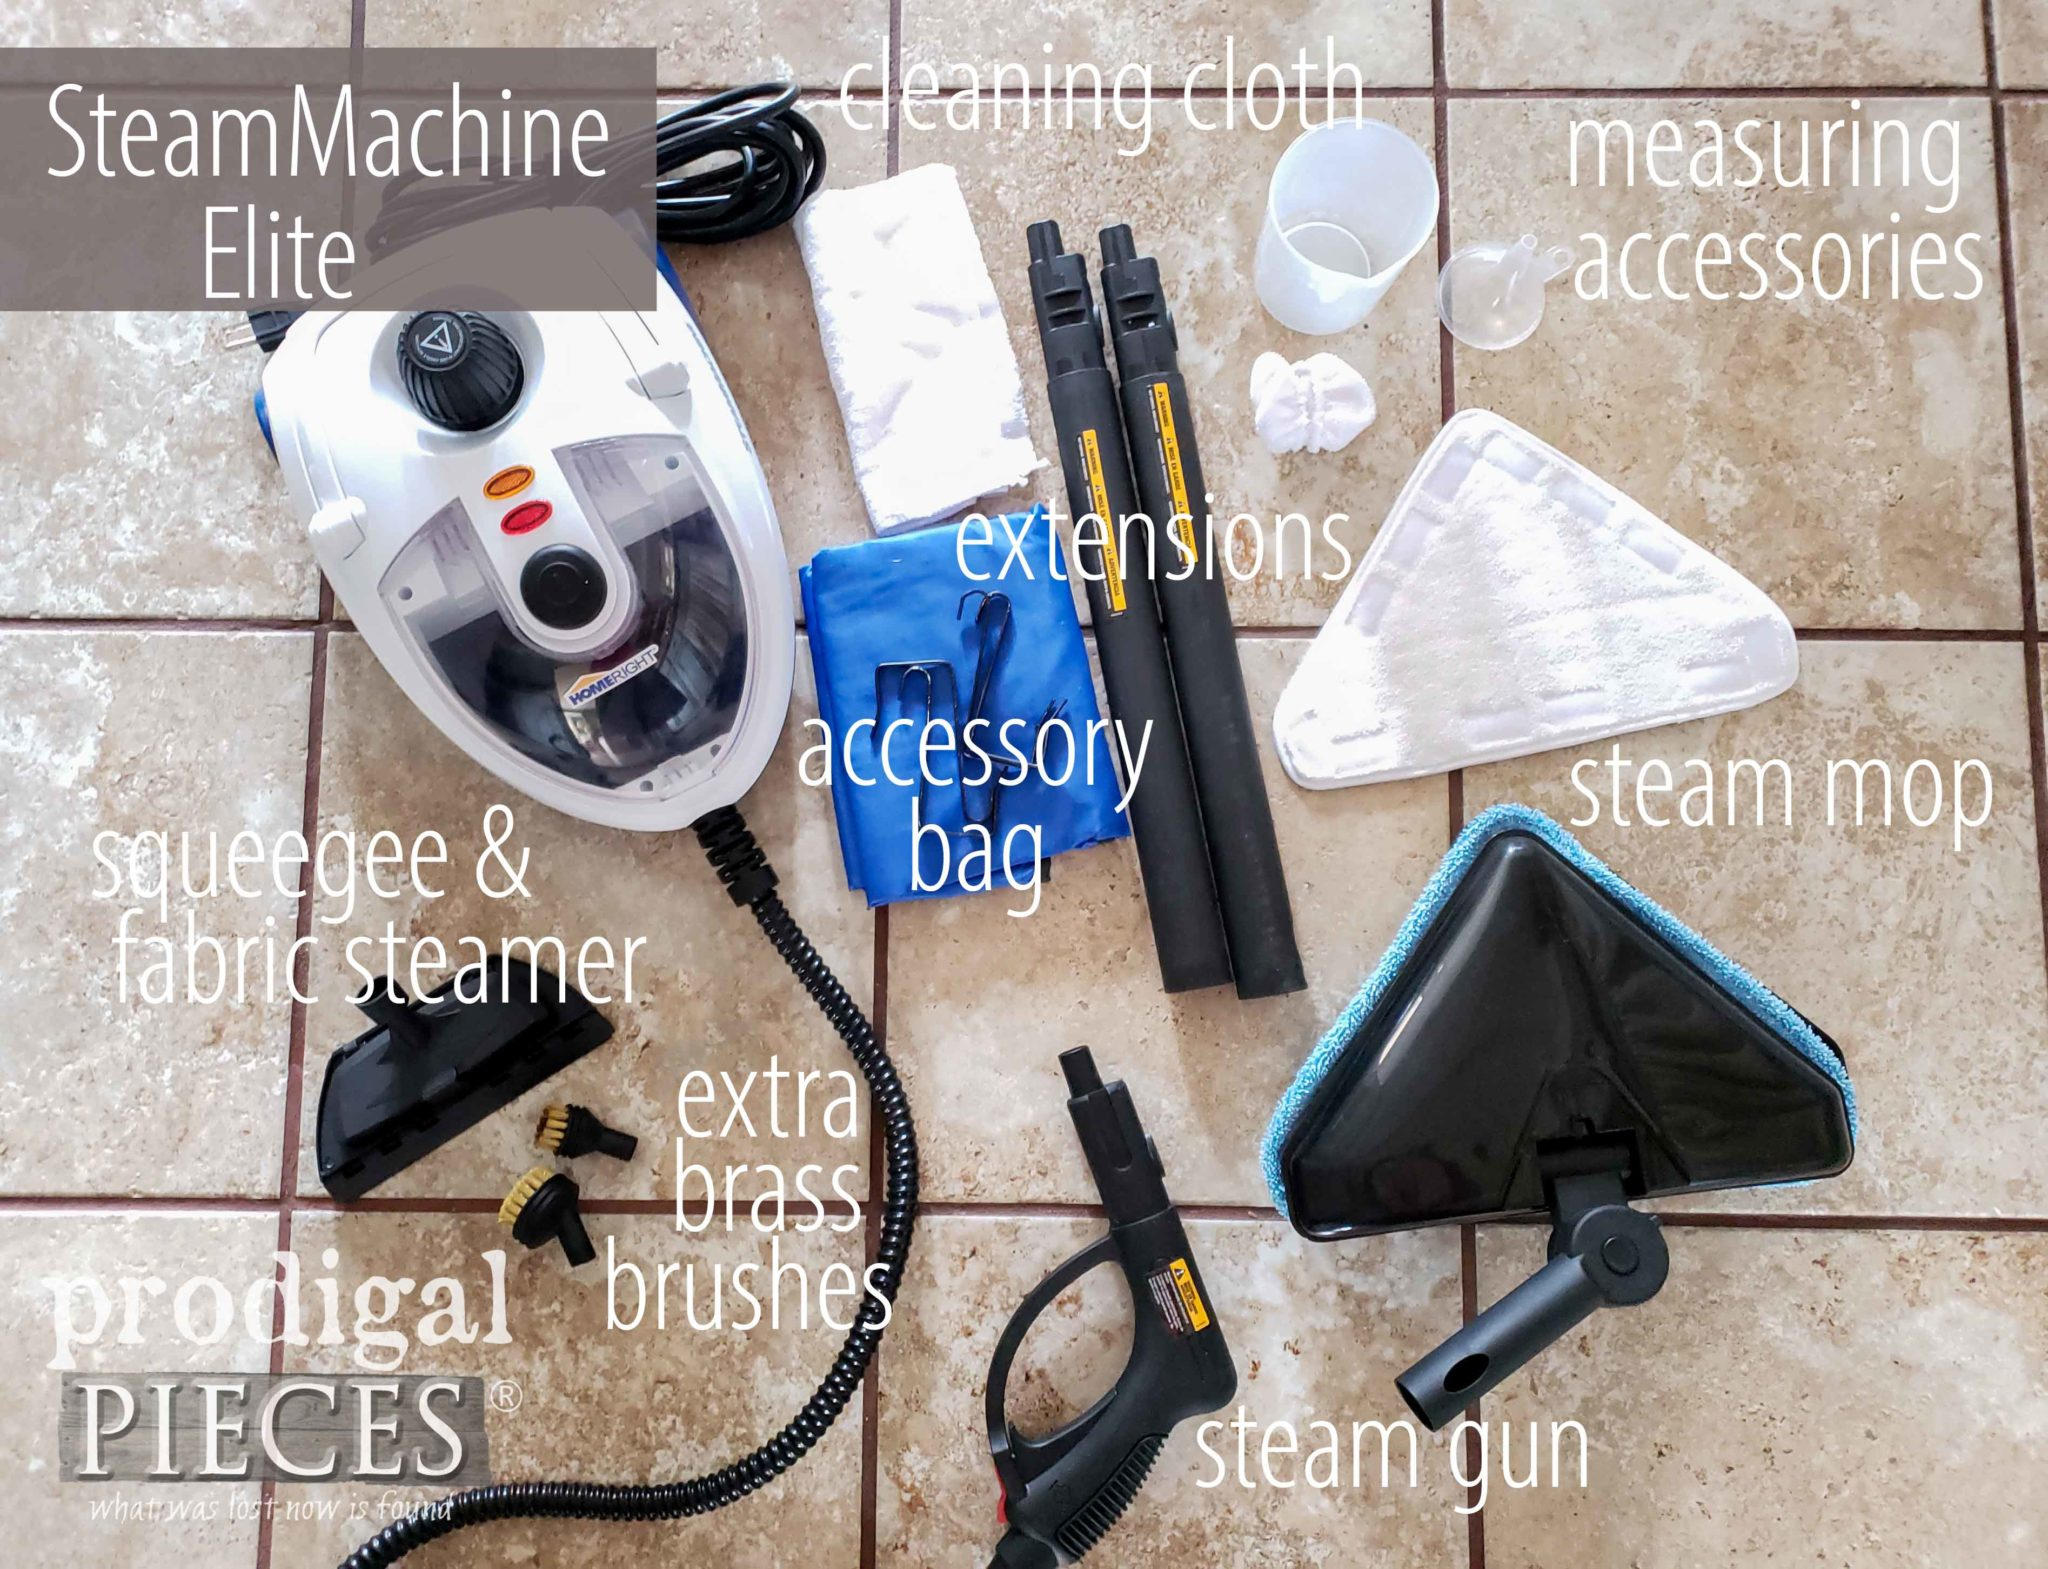 Check out the NEW HomeRight SteamMachine Elite with Acessories to tackle any cleaning job chemical free | Details at Prodigal Pieces | prodigalpieces.com